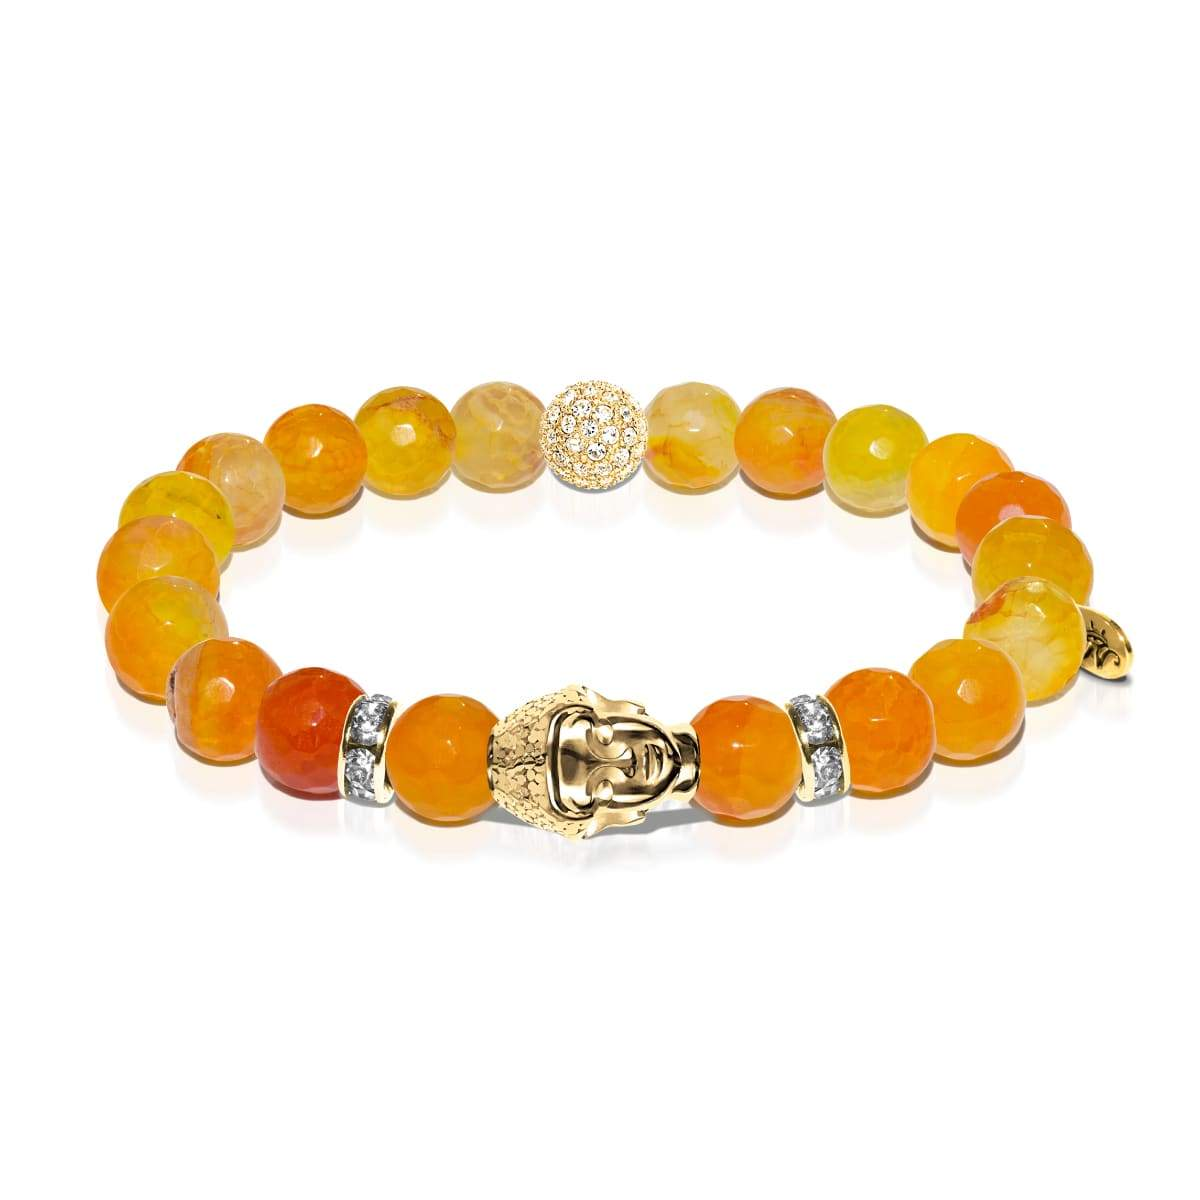 Loi de l'attraction | Bouddha d'or | Bracelet en agate orange